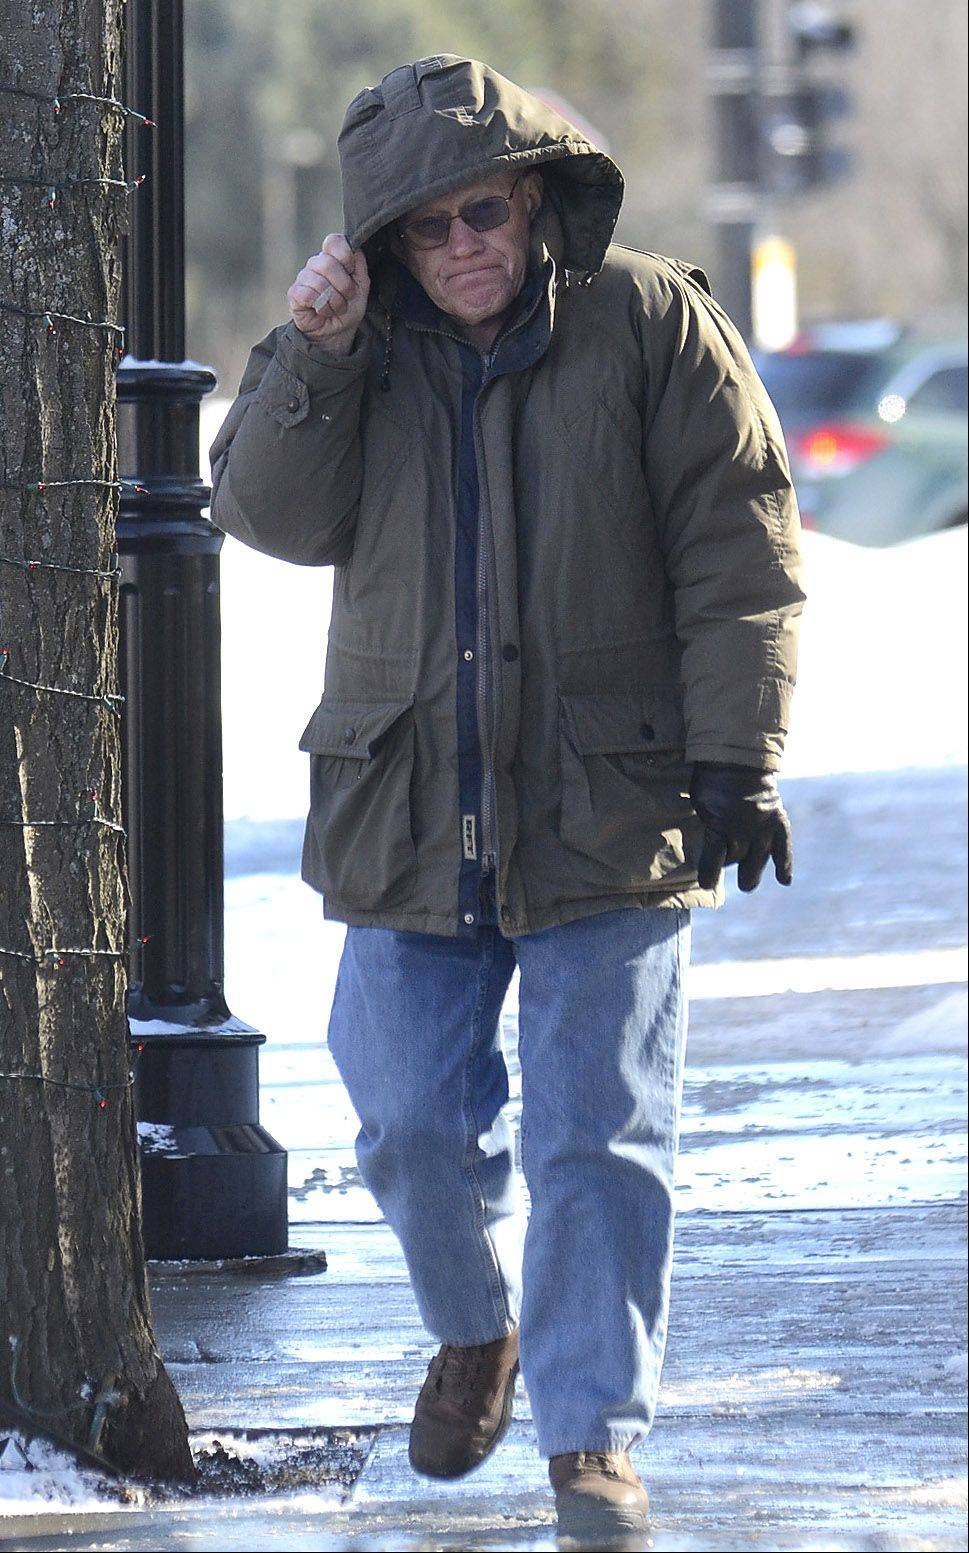 Bob Pinion of Rolling Meadows braves the cold Thursday while walking in downtown Palatine.